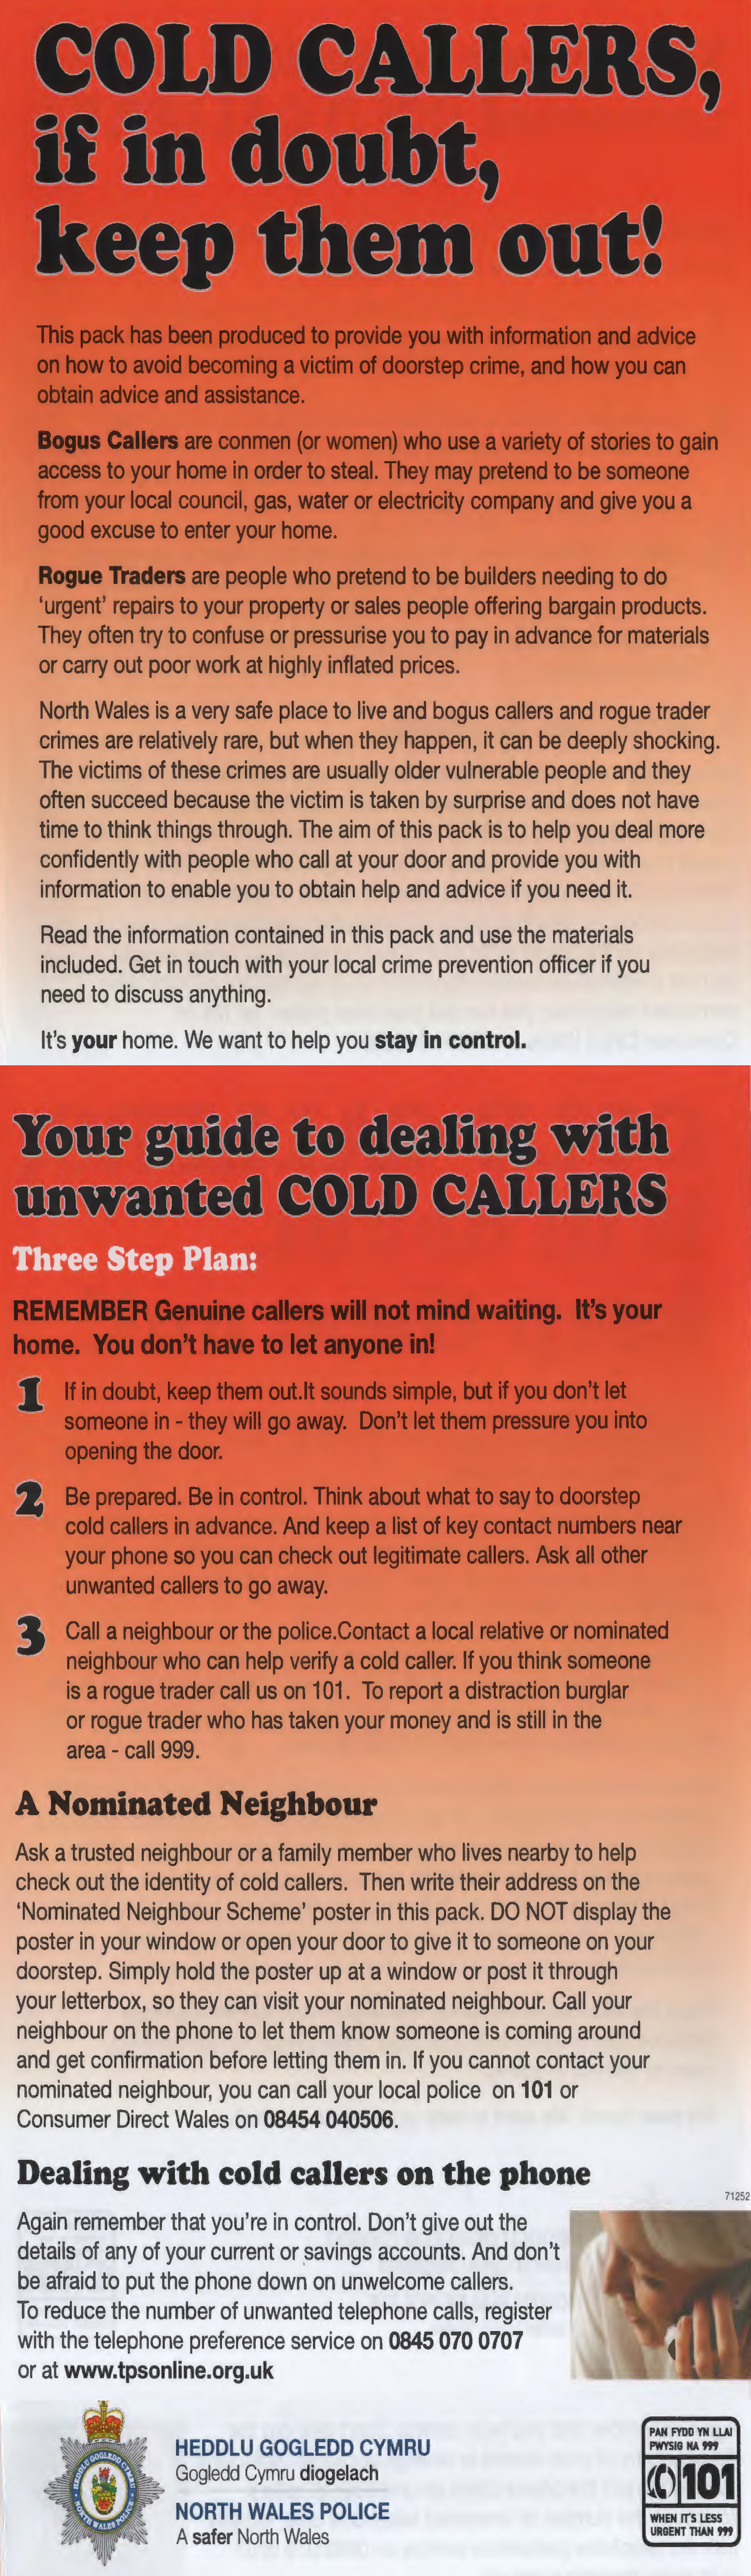 Cold Callers-1.jpg